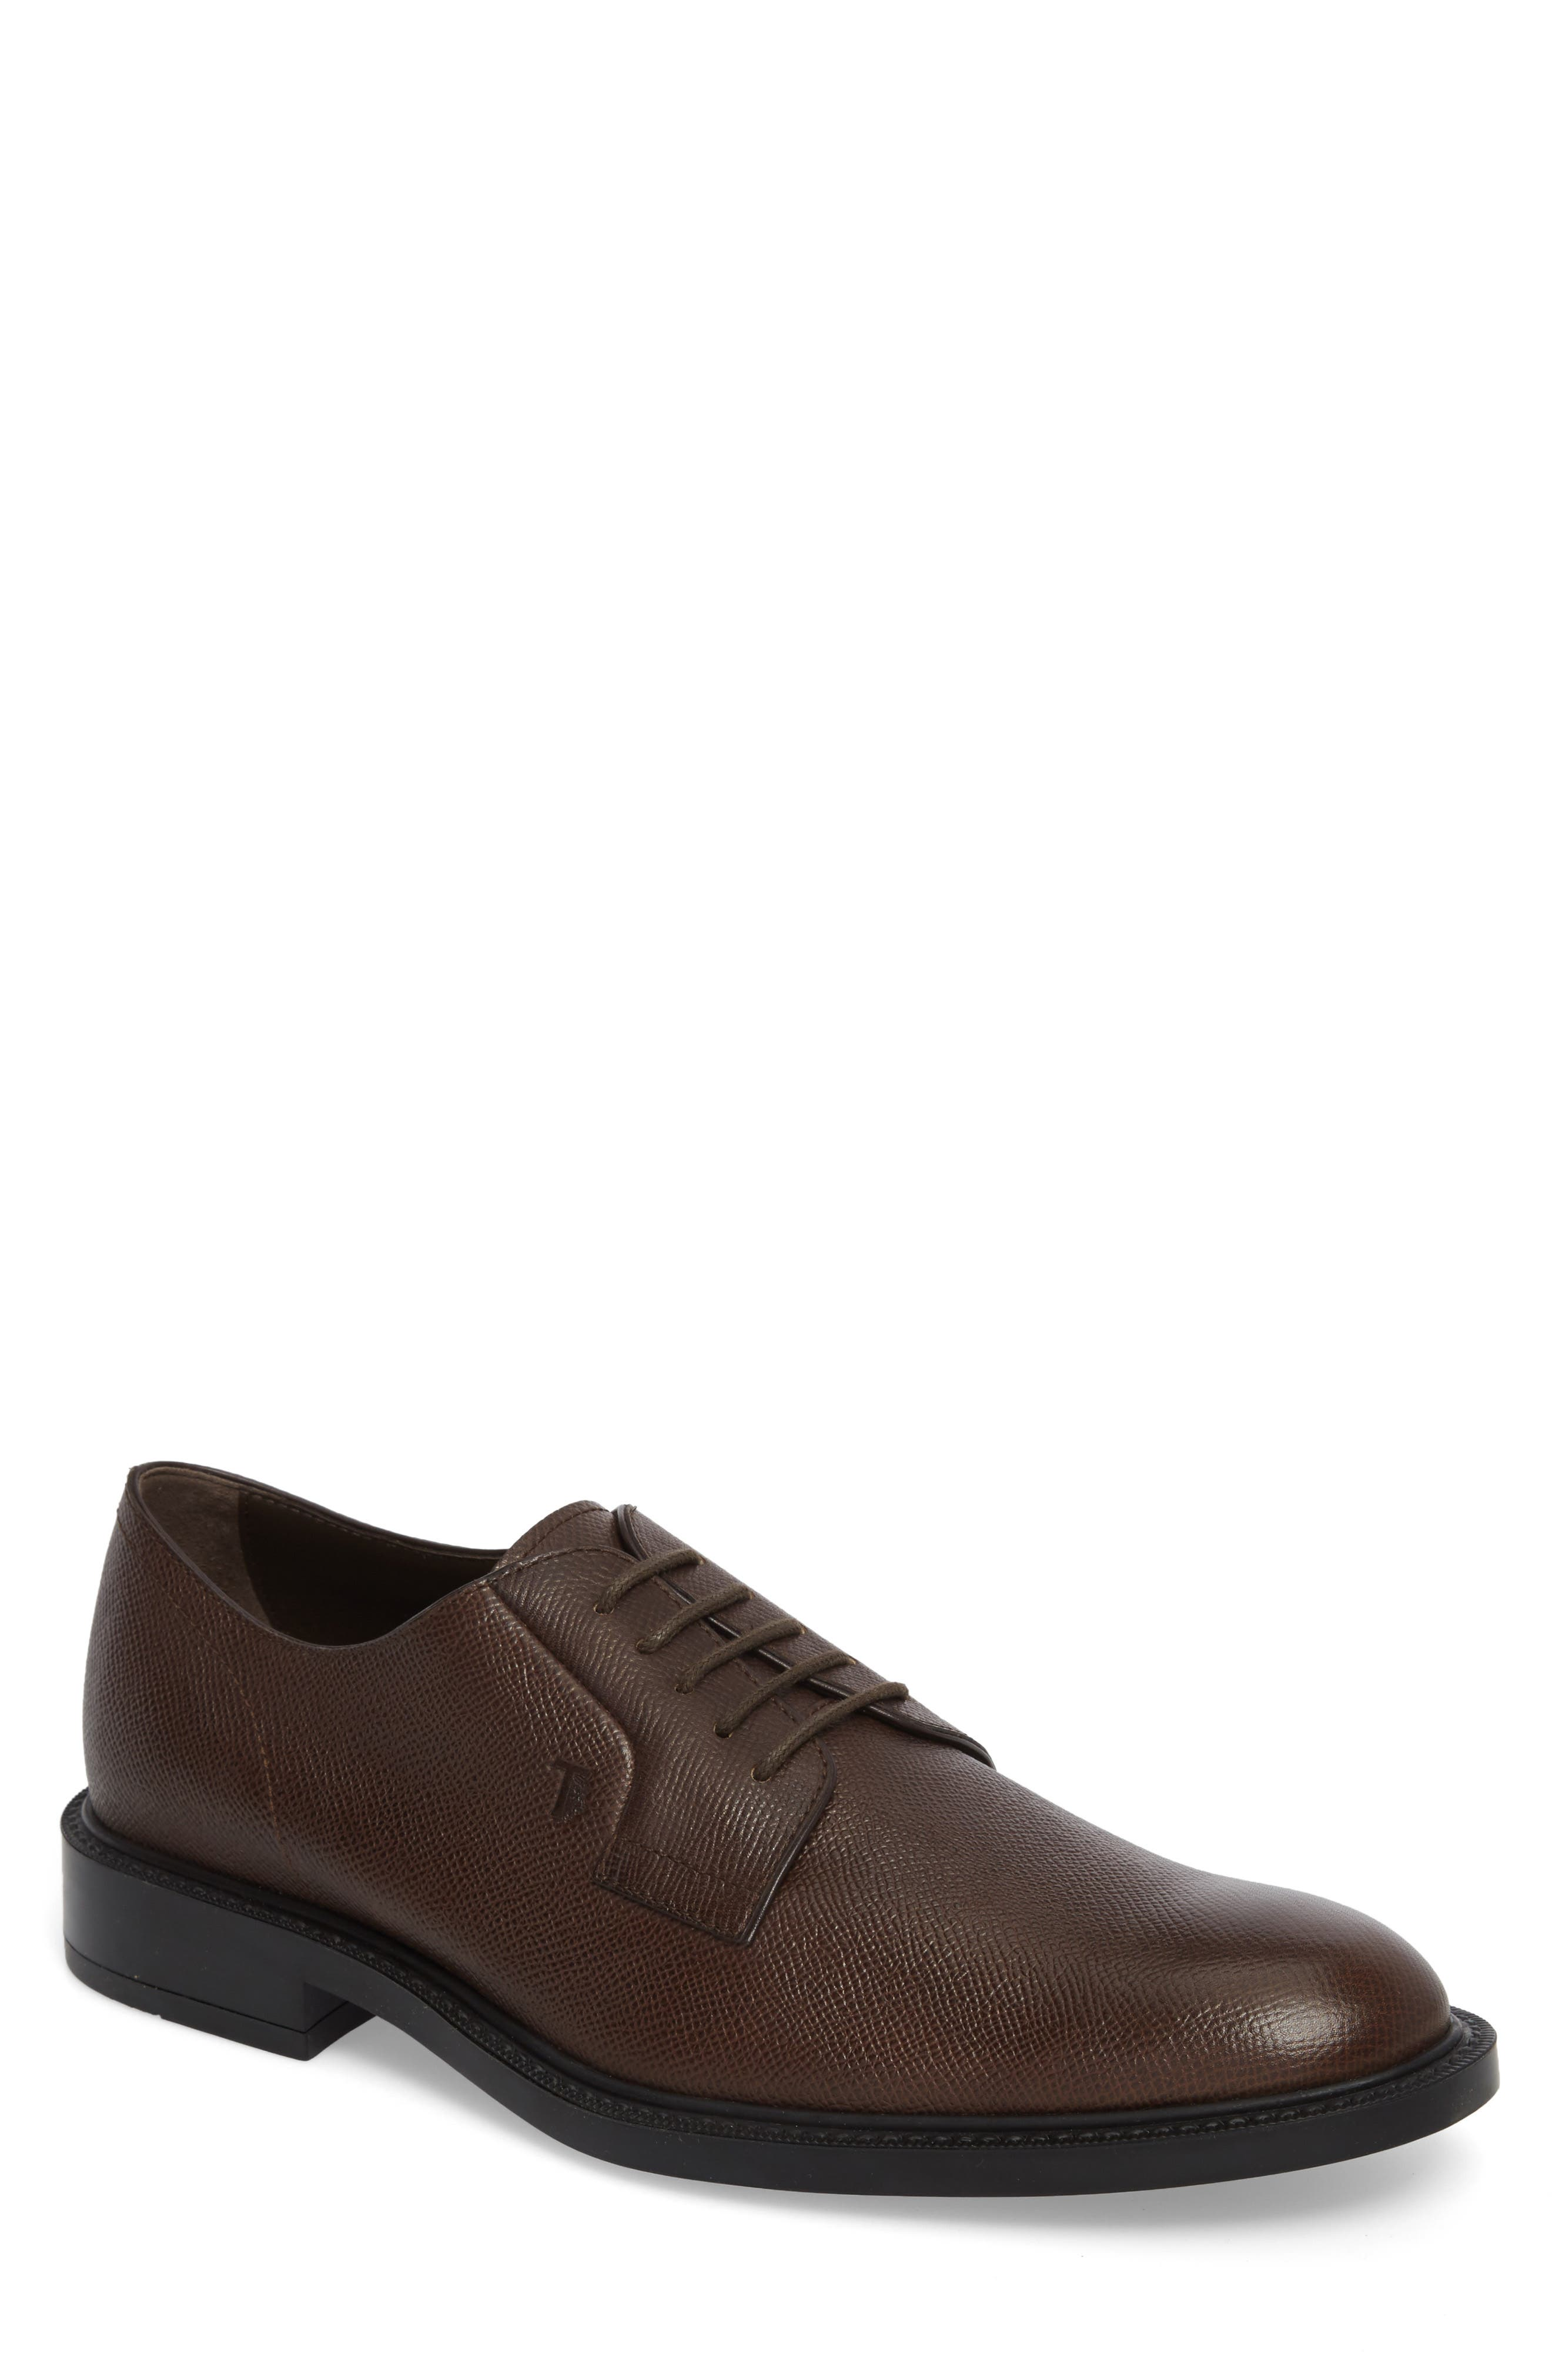 Clean Plain Toe Derby,                             Main thumbnail 1, color,                             Brown Textured Leather